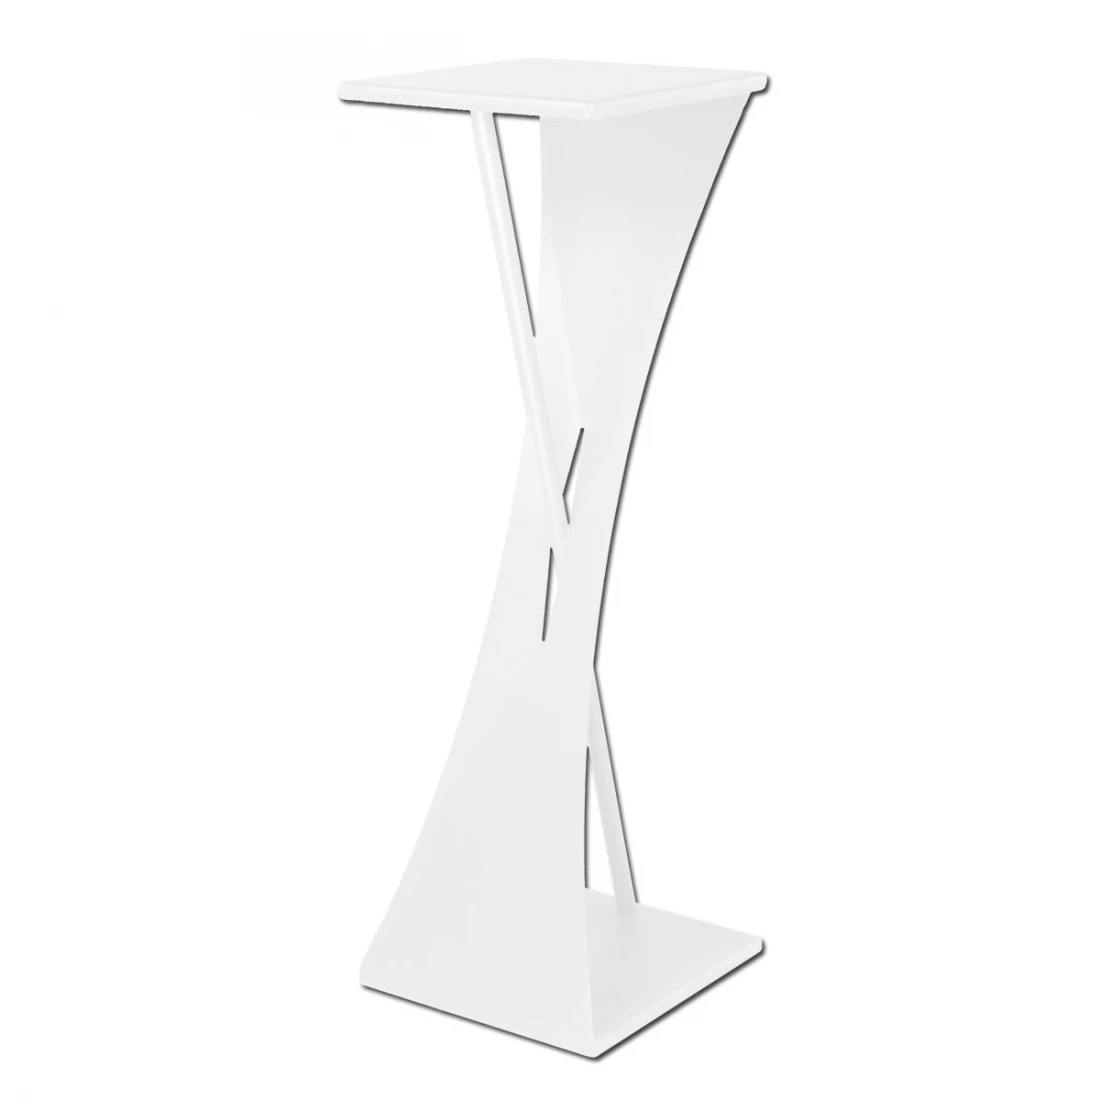 Sellette En Verre Conforama Sellette Design Verre Bouts De Canapes Tables Et Chaises